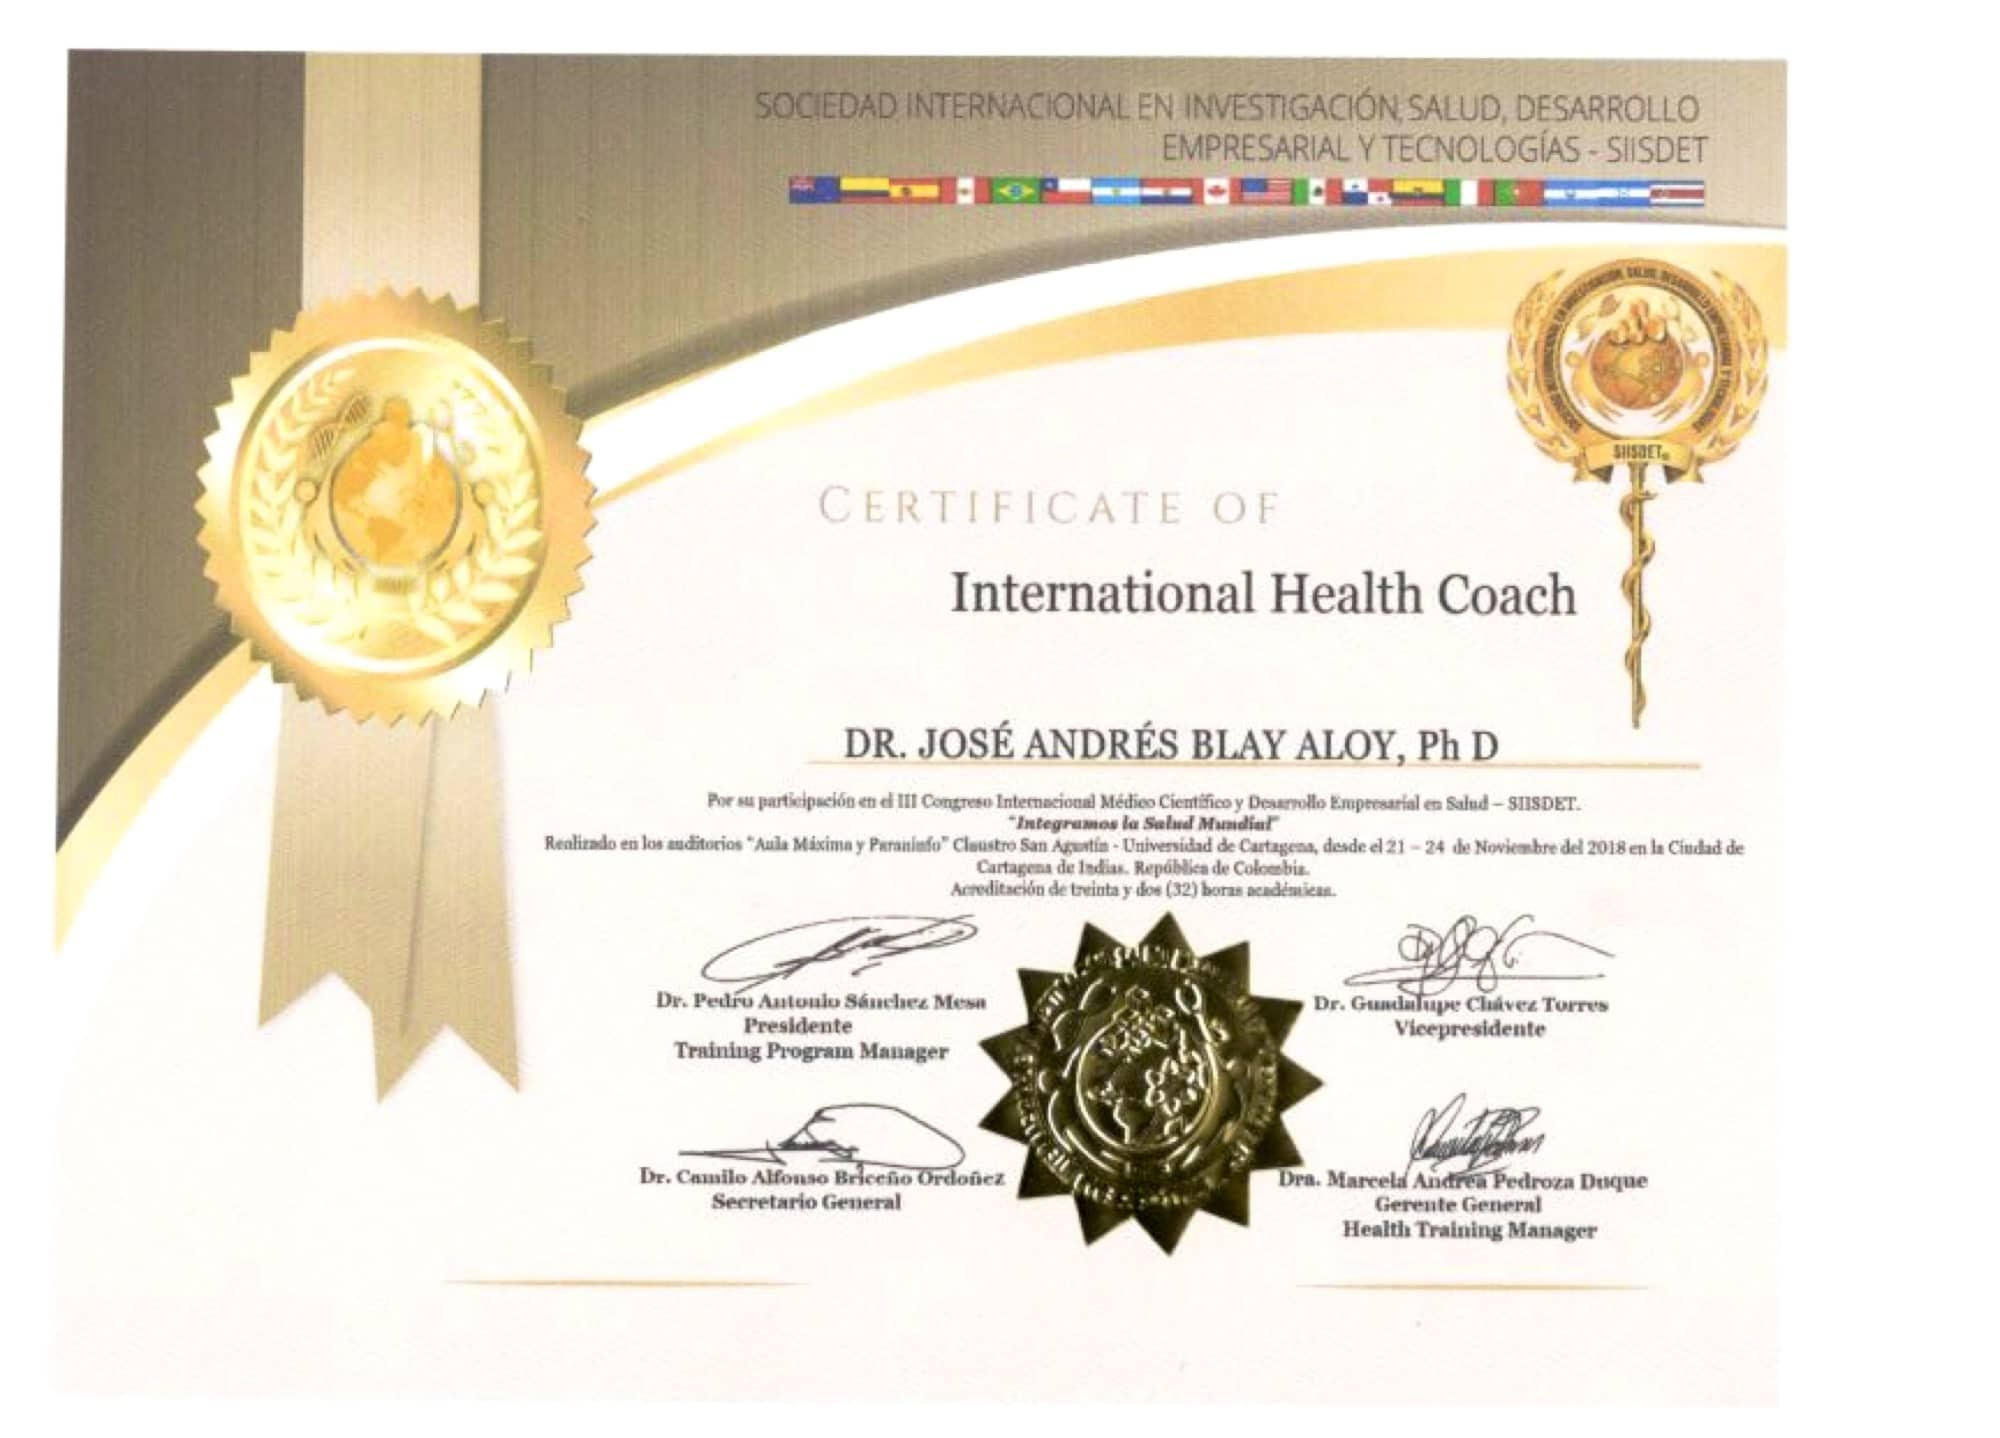 International Health Coach 2 Jose Andres Blay Aloy